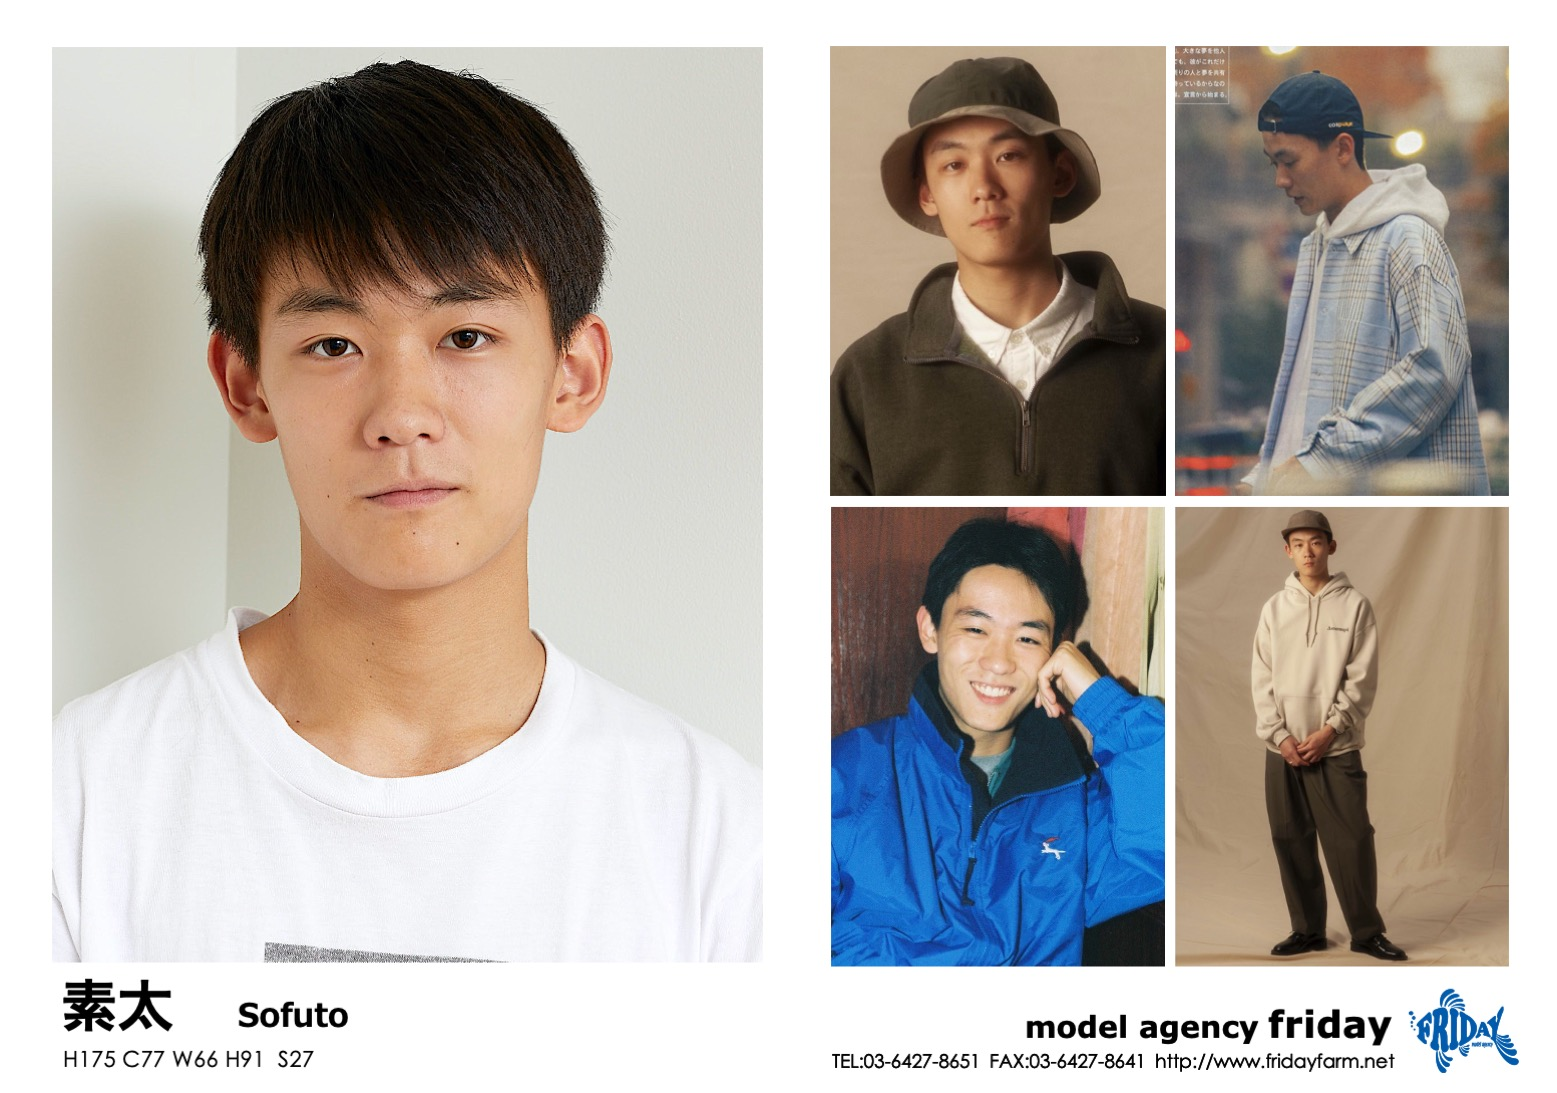 素太 - Sofuto | model agency friday